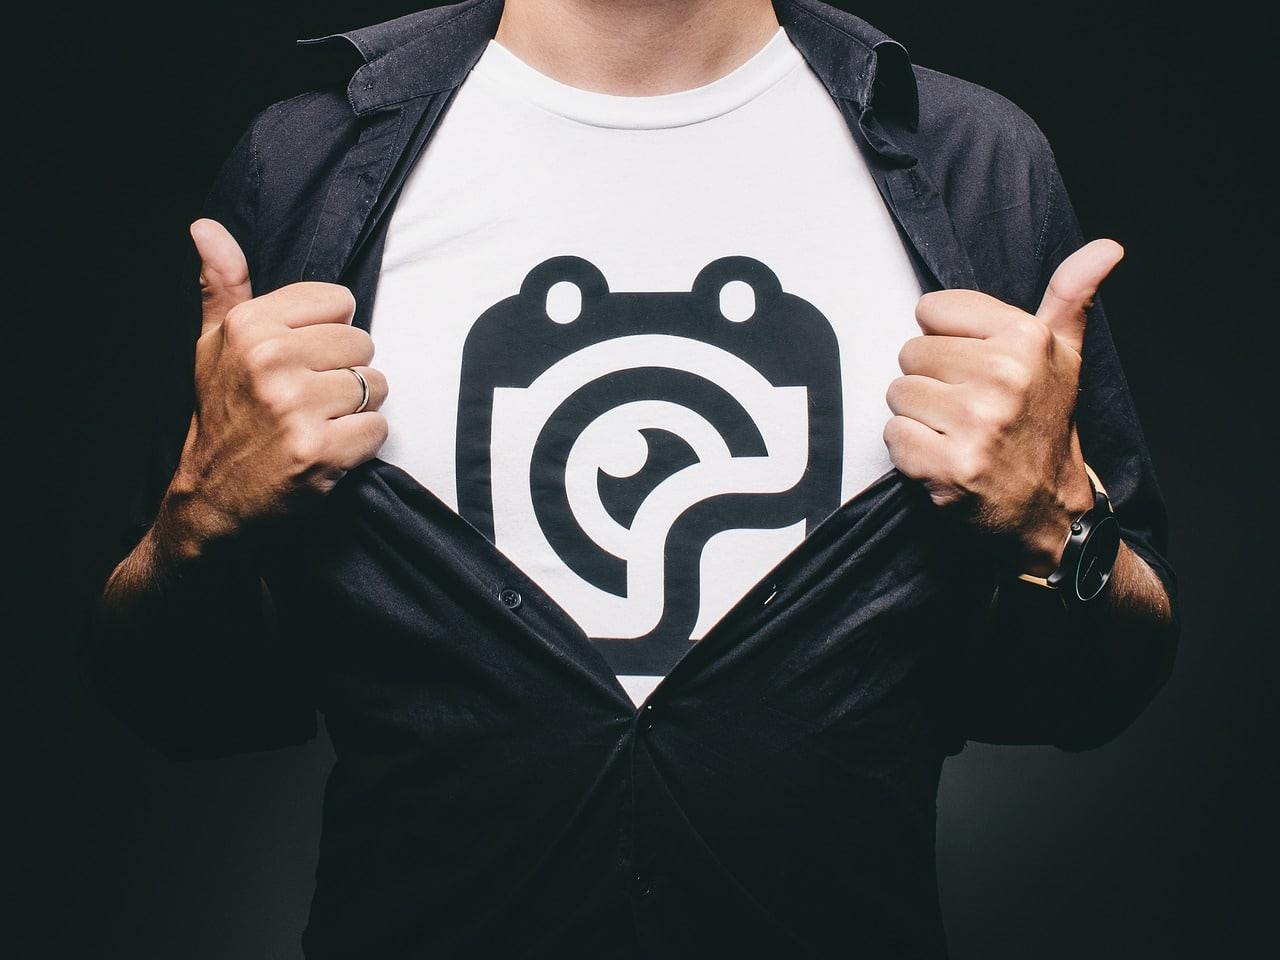 7 Great Ways And Ideas For Customizing A Shirt